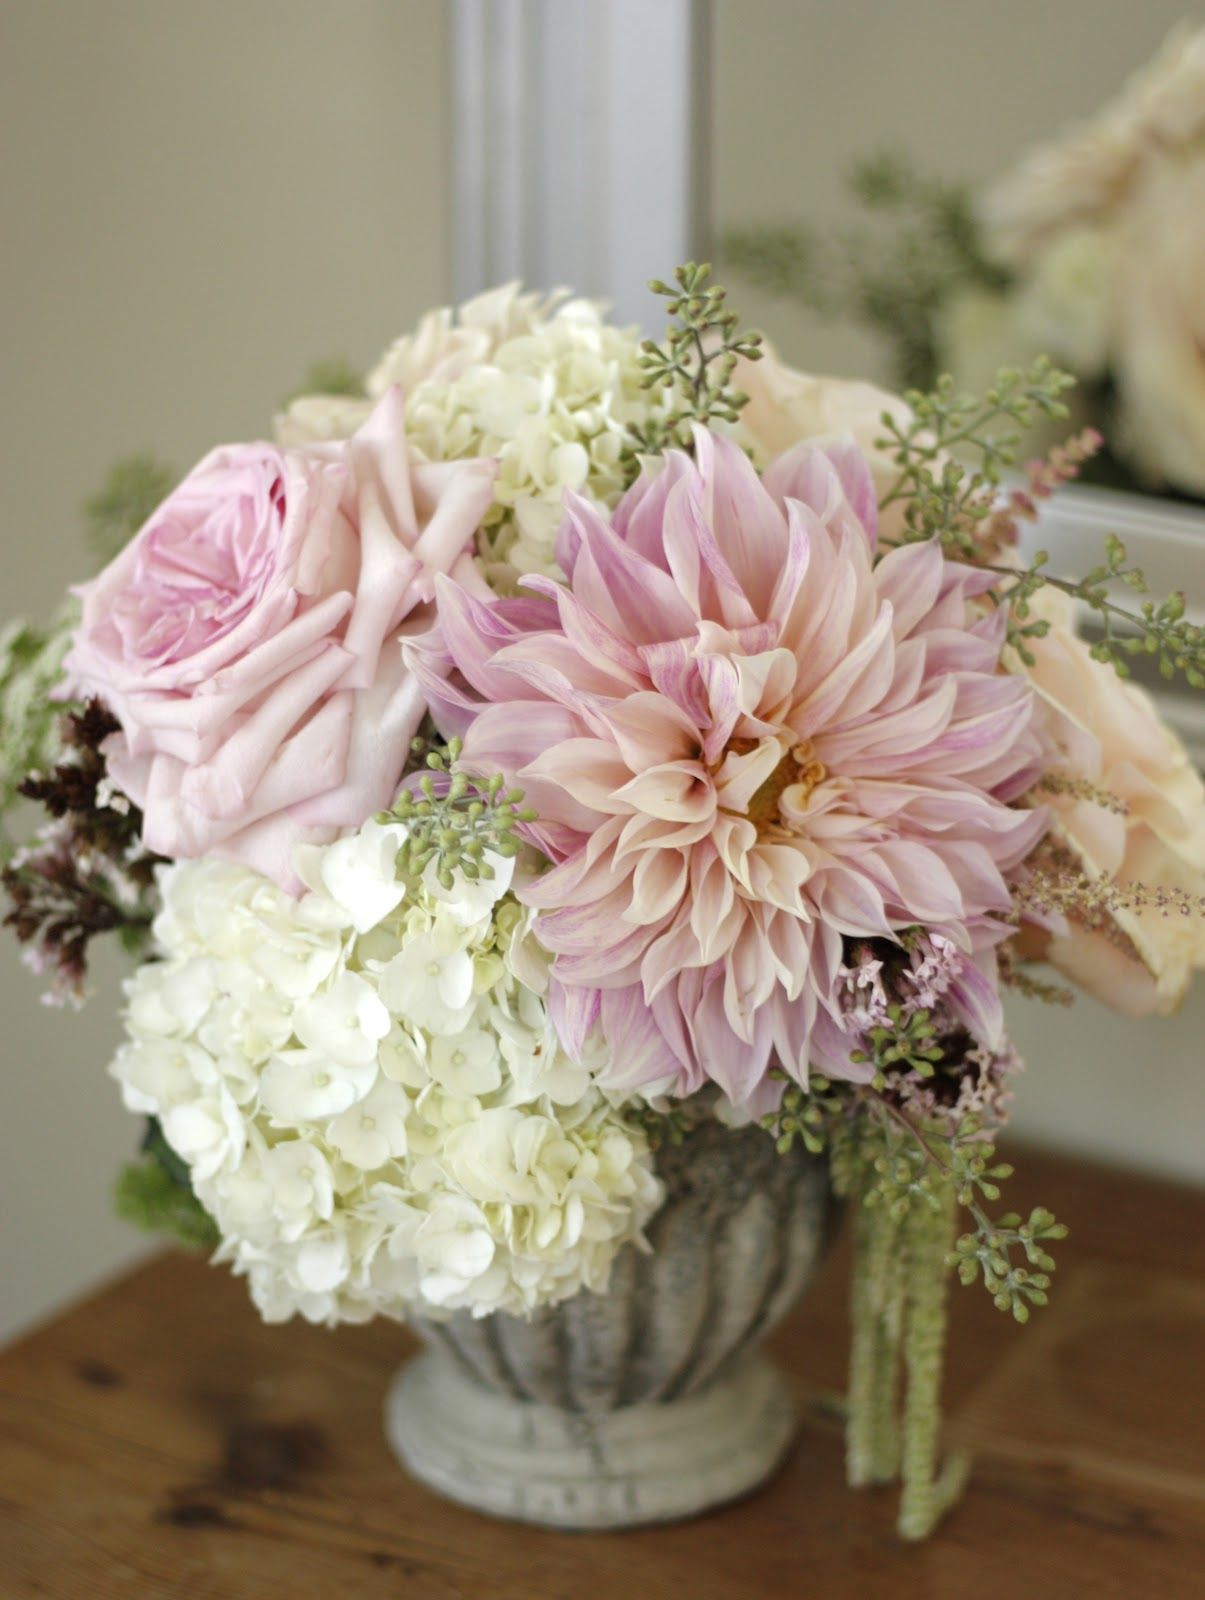 dahlias, hydrangea & rosesreminds me of my bouquet, except the